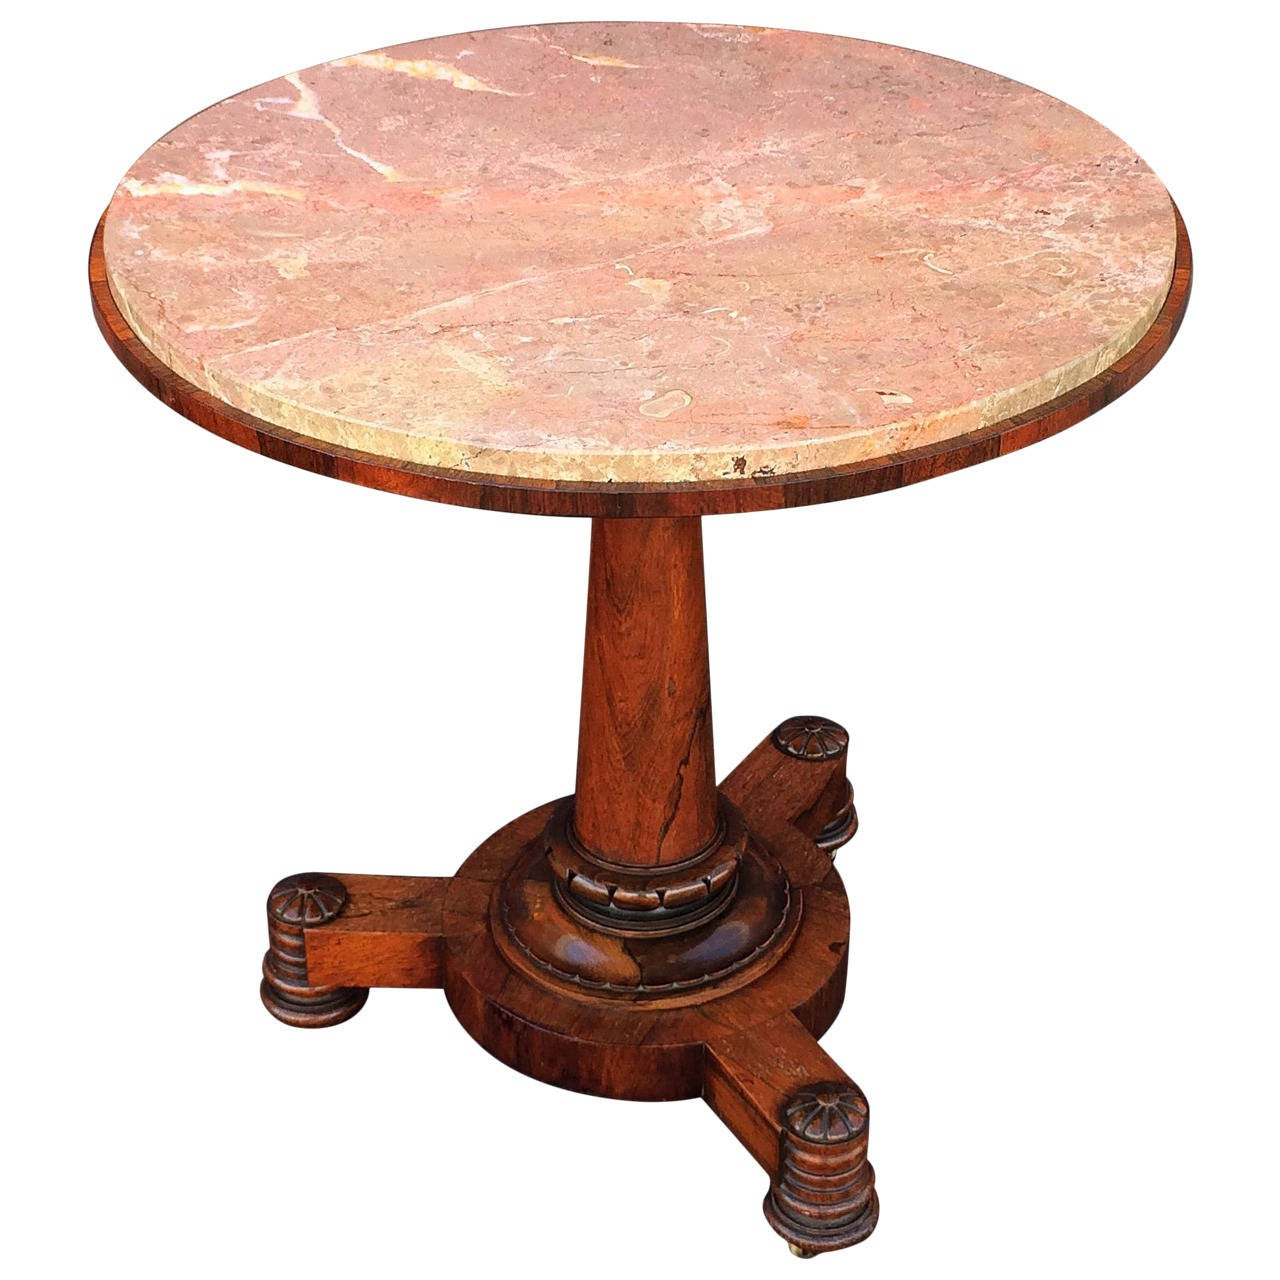 French gueridon or round table of rosewood for sale at 1stdibs for Table gueridon